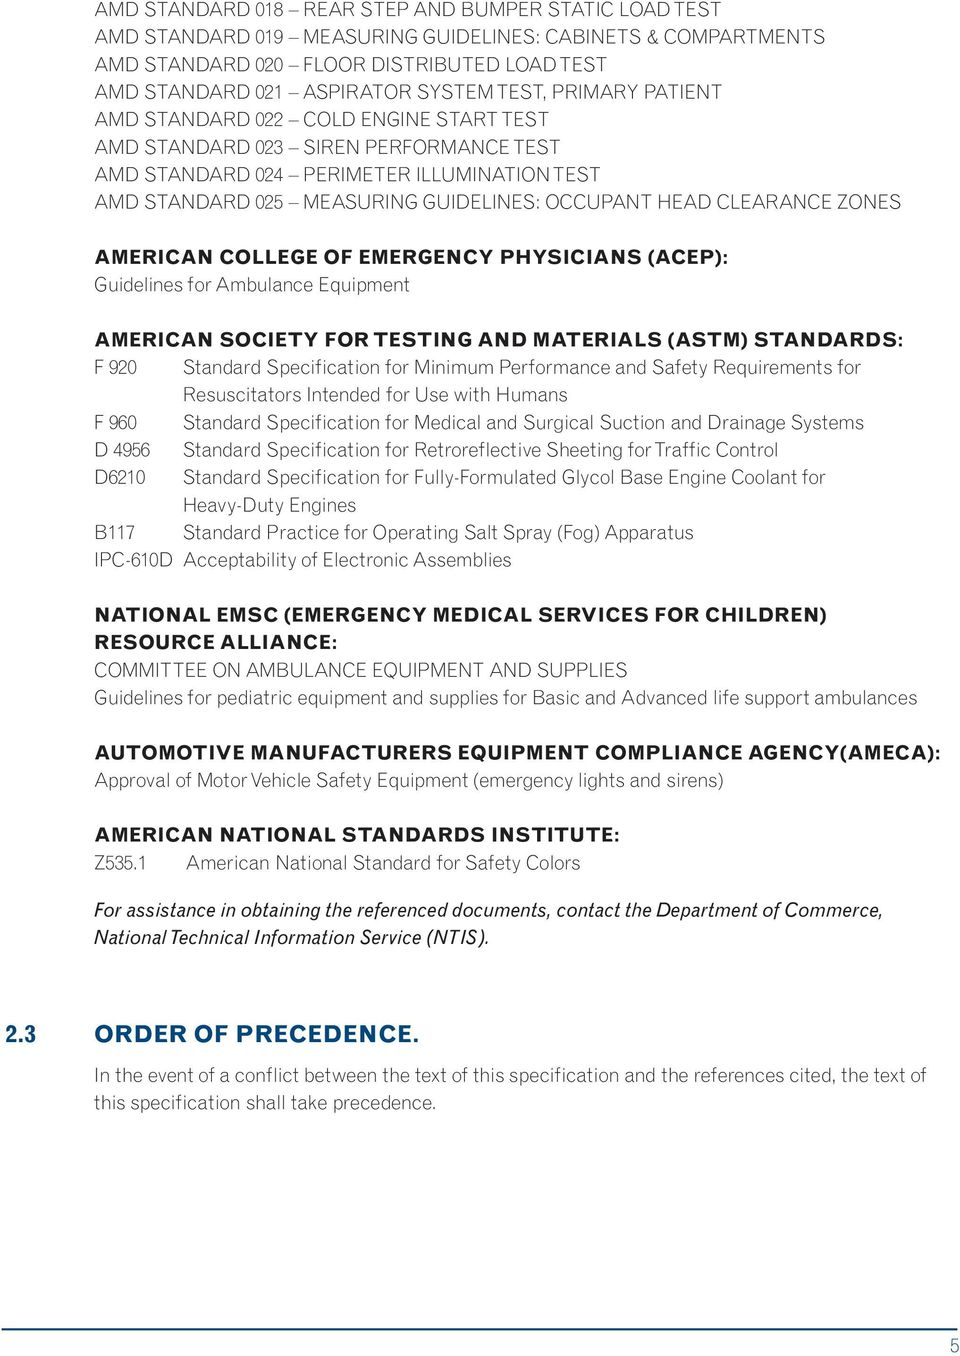 CLEARANCE ZONES AMERICAN COLLEGE OF EMERGENCY PHYSICIANS (ACEP): Guidelines for Ambulance Equipment AMERICAN SOCIETY FOR TESTING AND MATERIALS (ASTM) STANDARDS: F 920 Standard Specification for